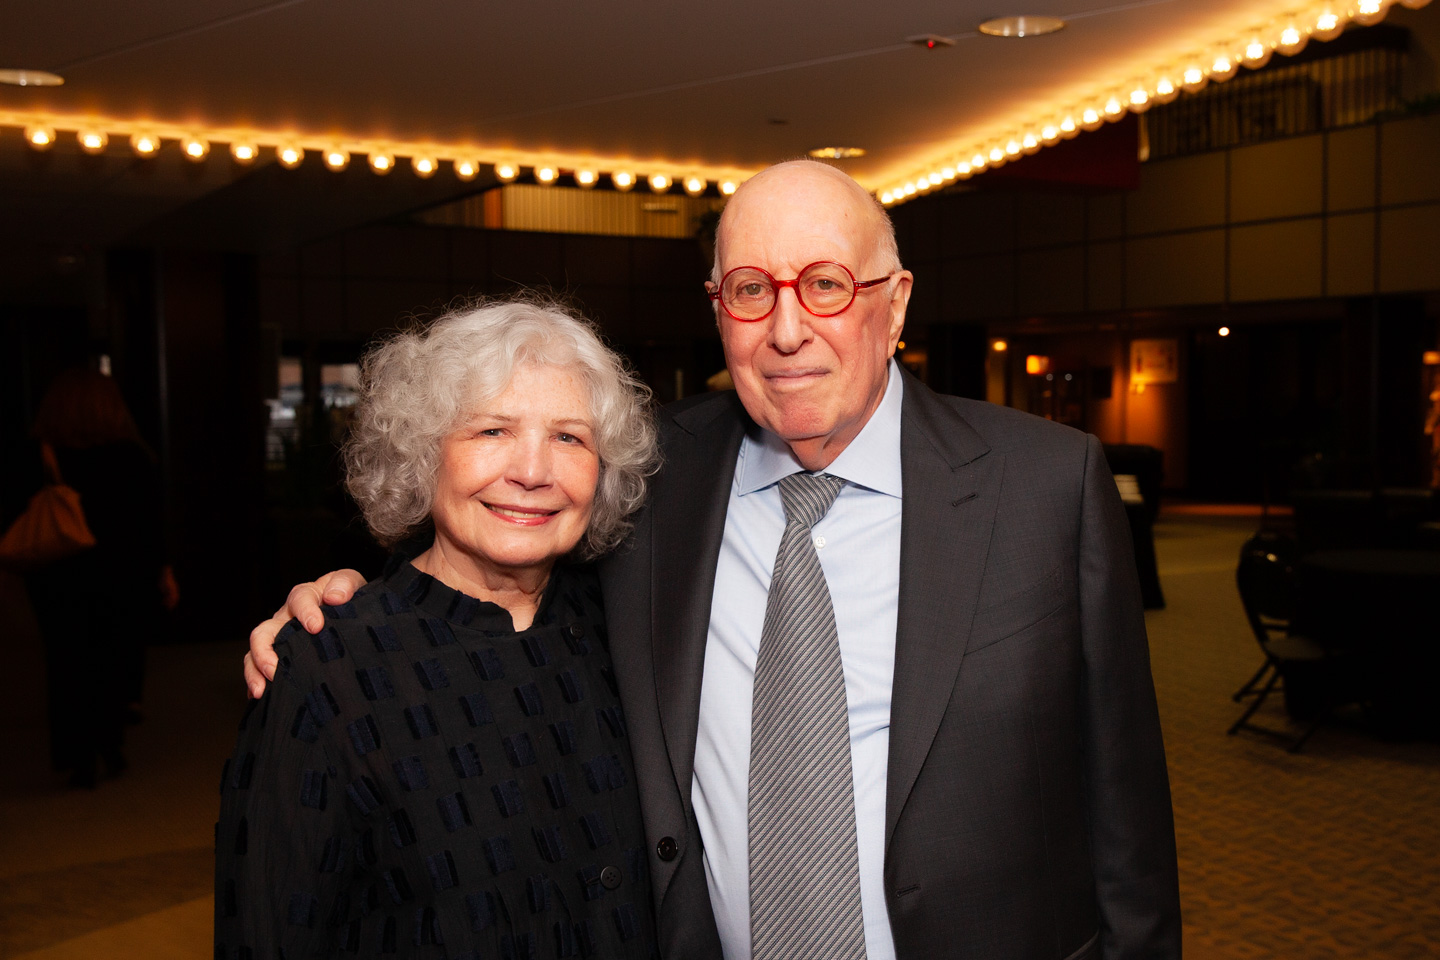 Doug and Barbara Bloom